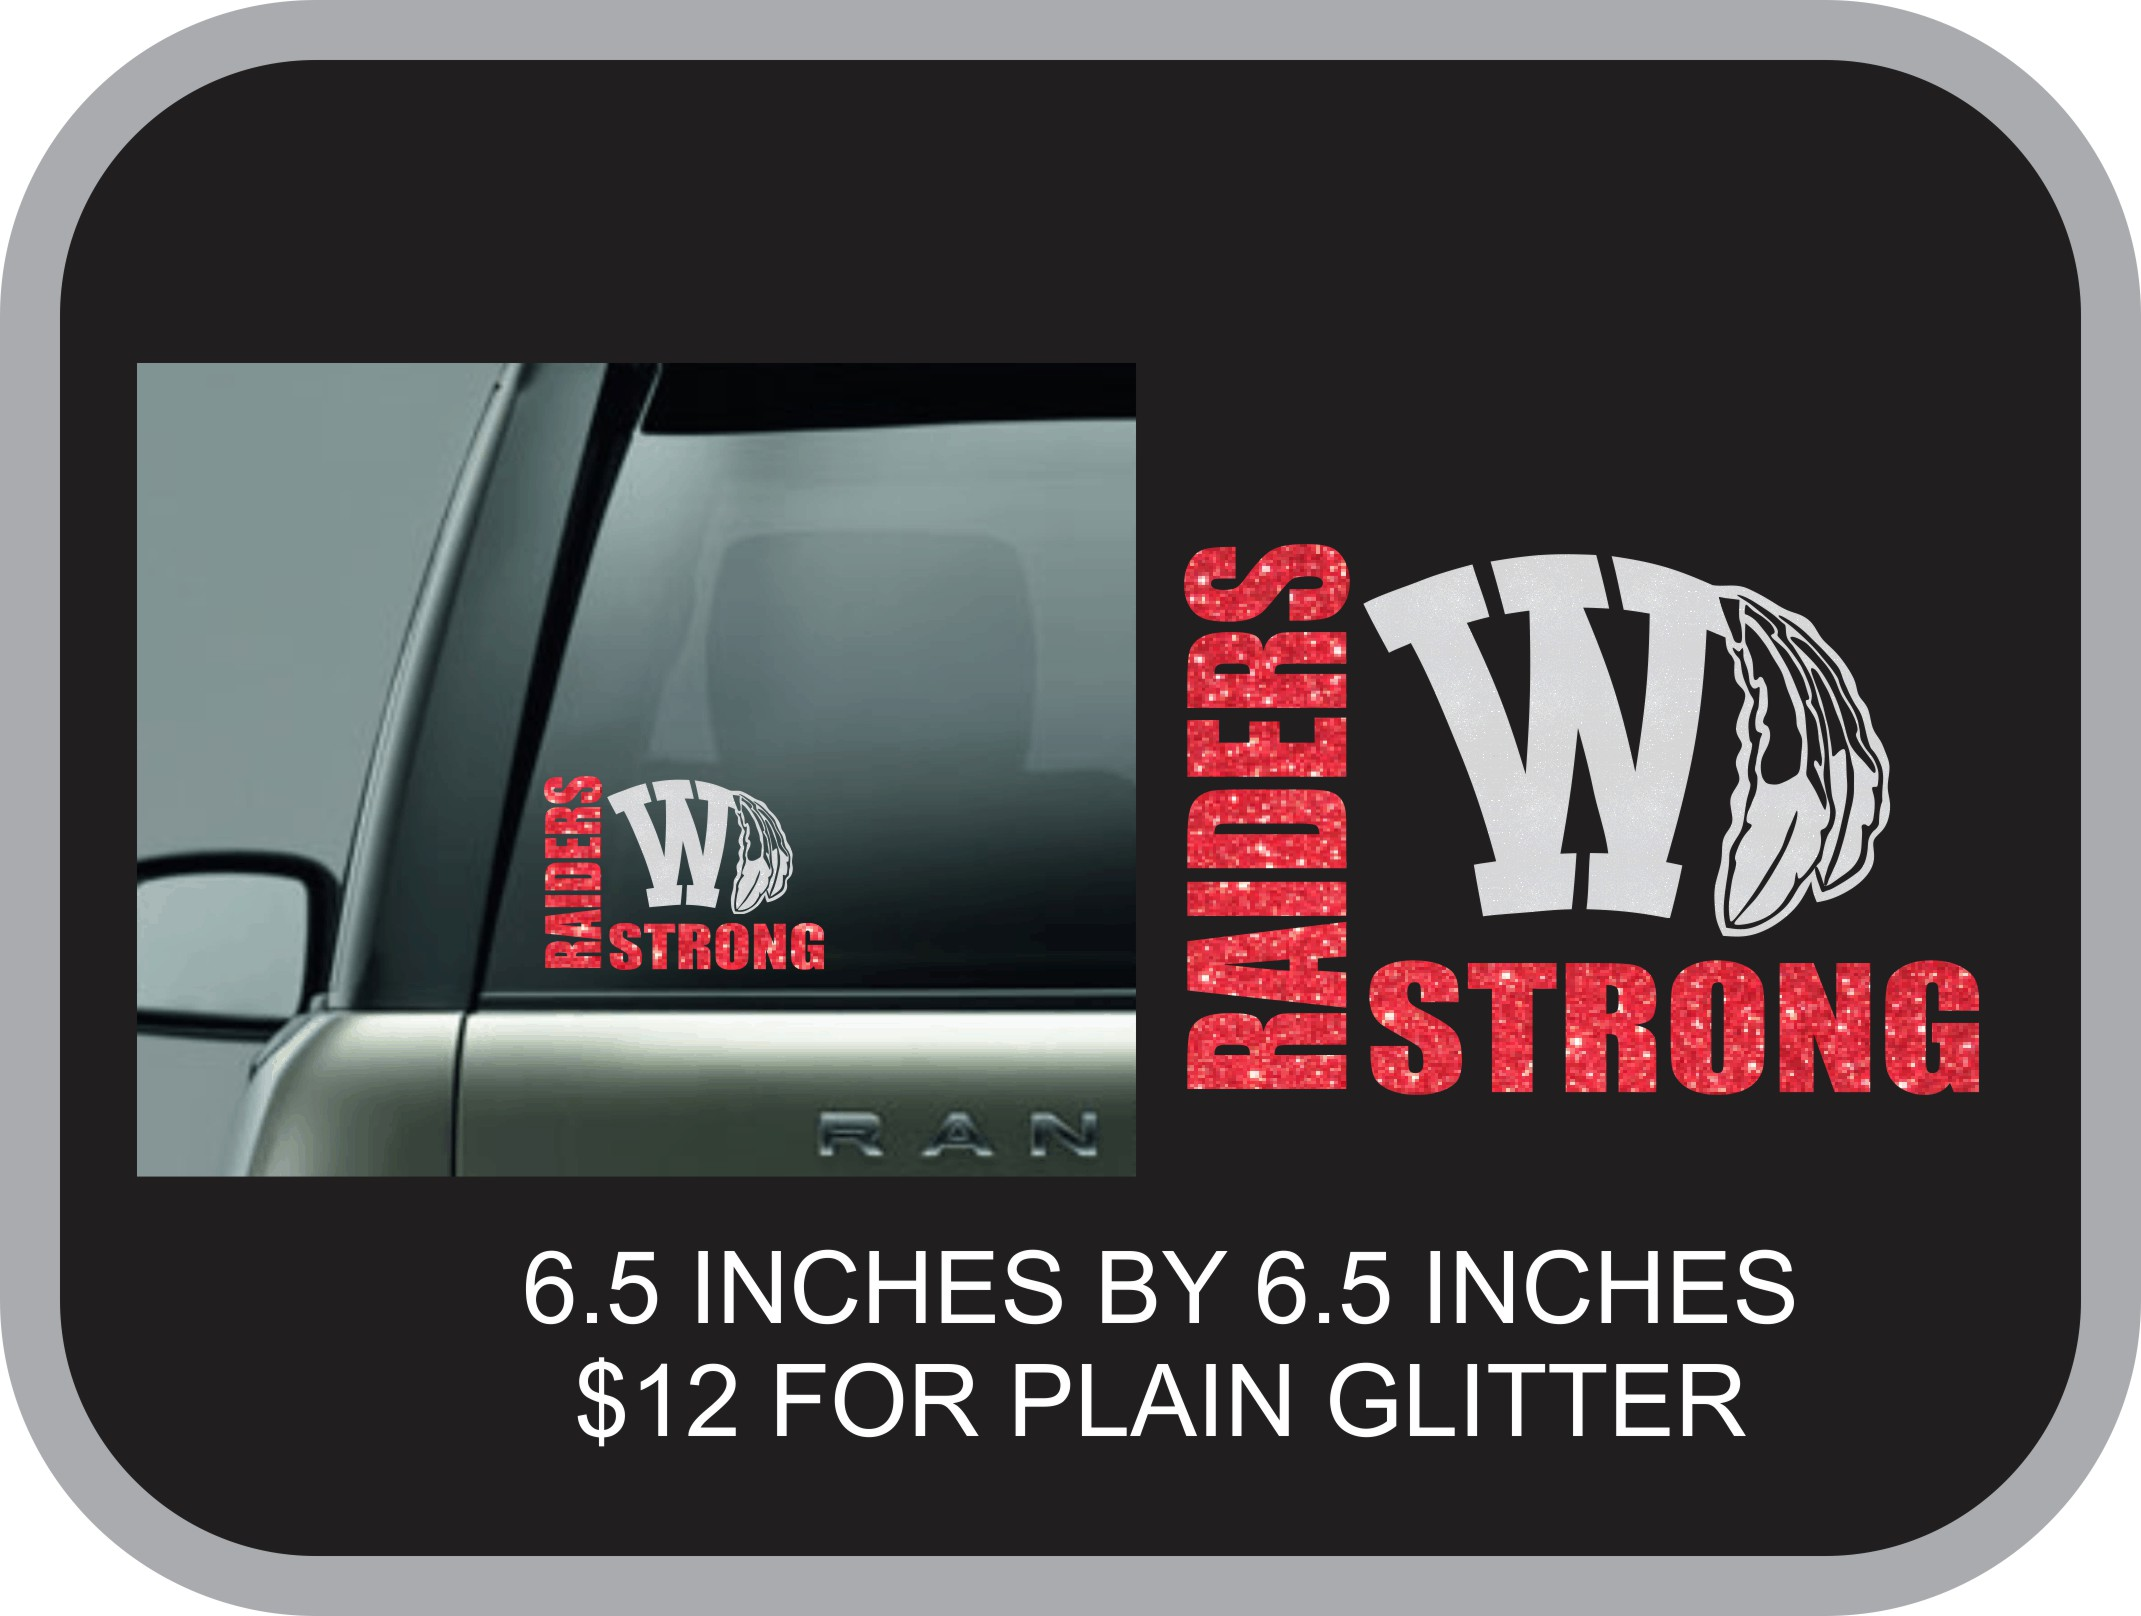 Raider Strong Glitter Window Decal